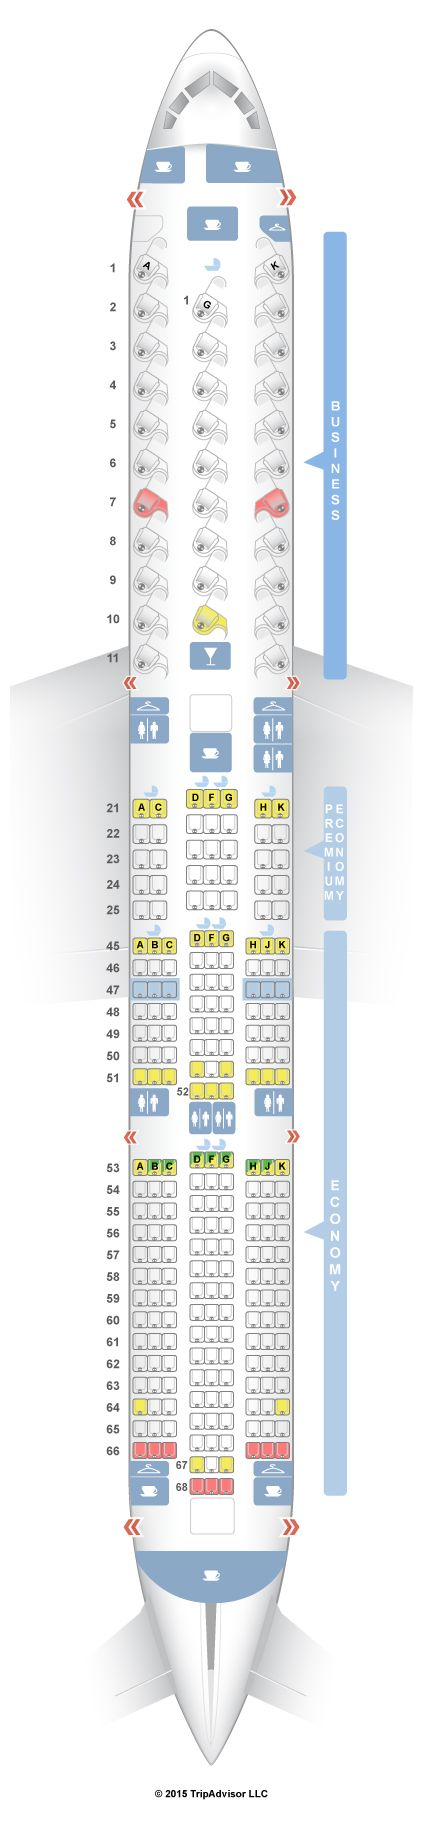 Seatguru Seat Map Virgin Atlantic Boeing 787 900 789